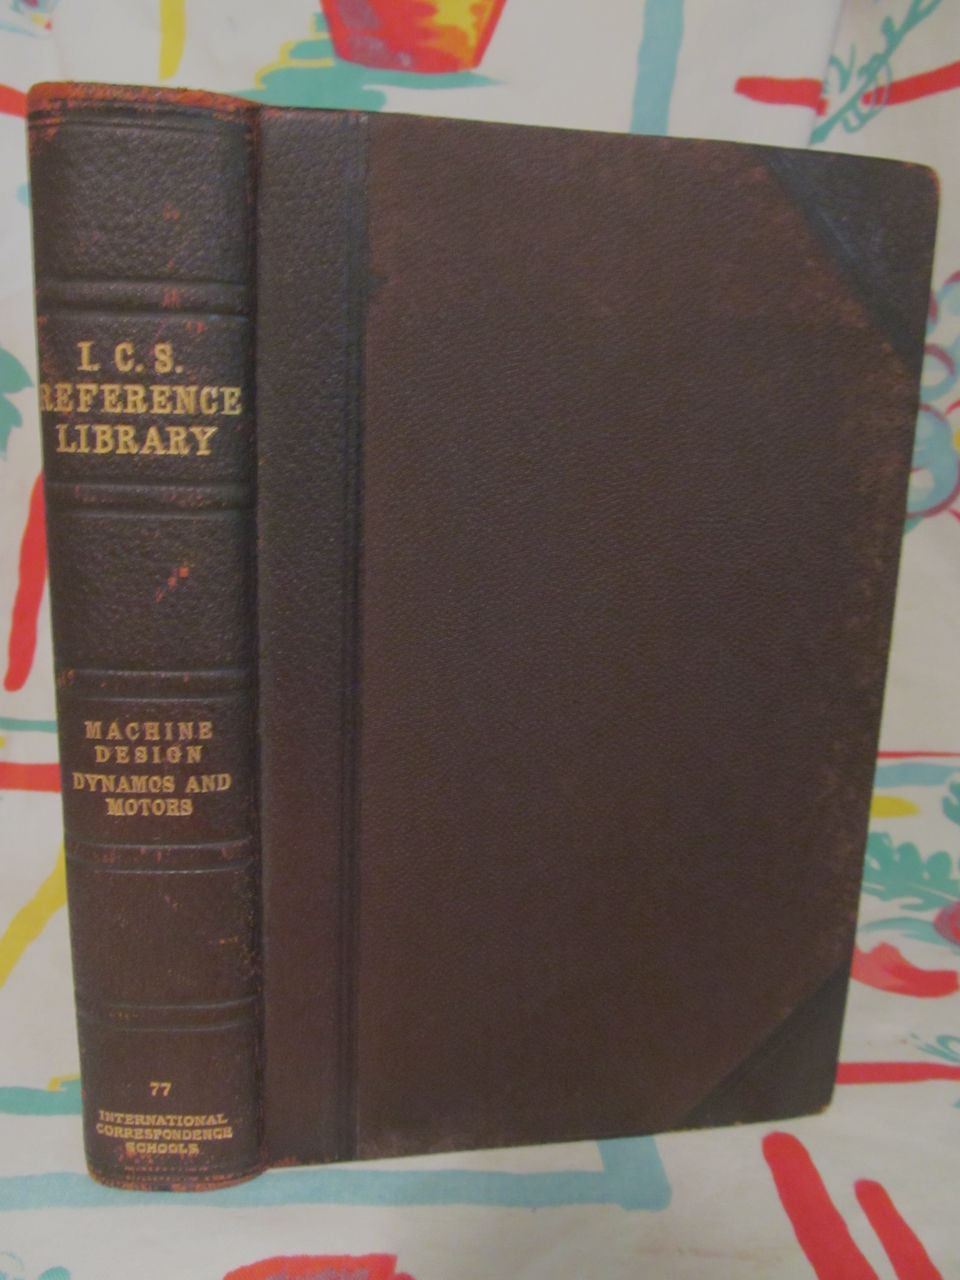 1905 ICS Reference Library Textbook  #77,Machine Design,Dynamos and Motors